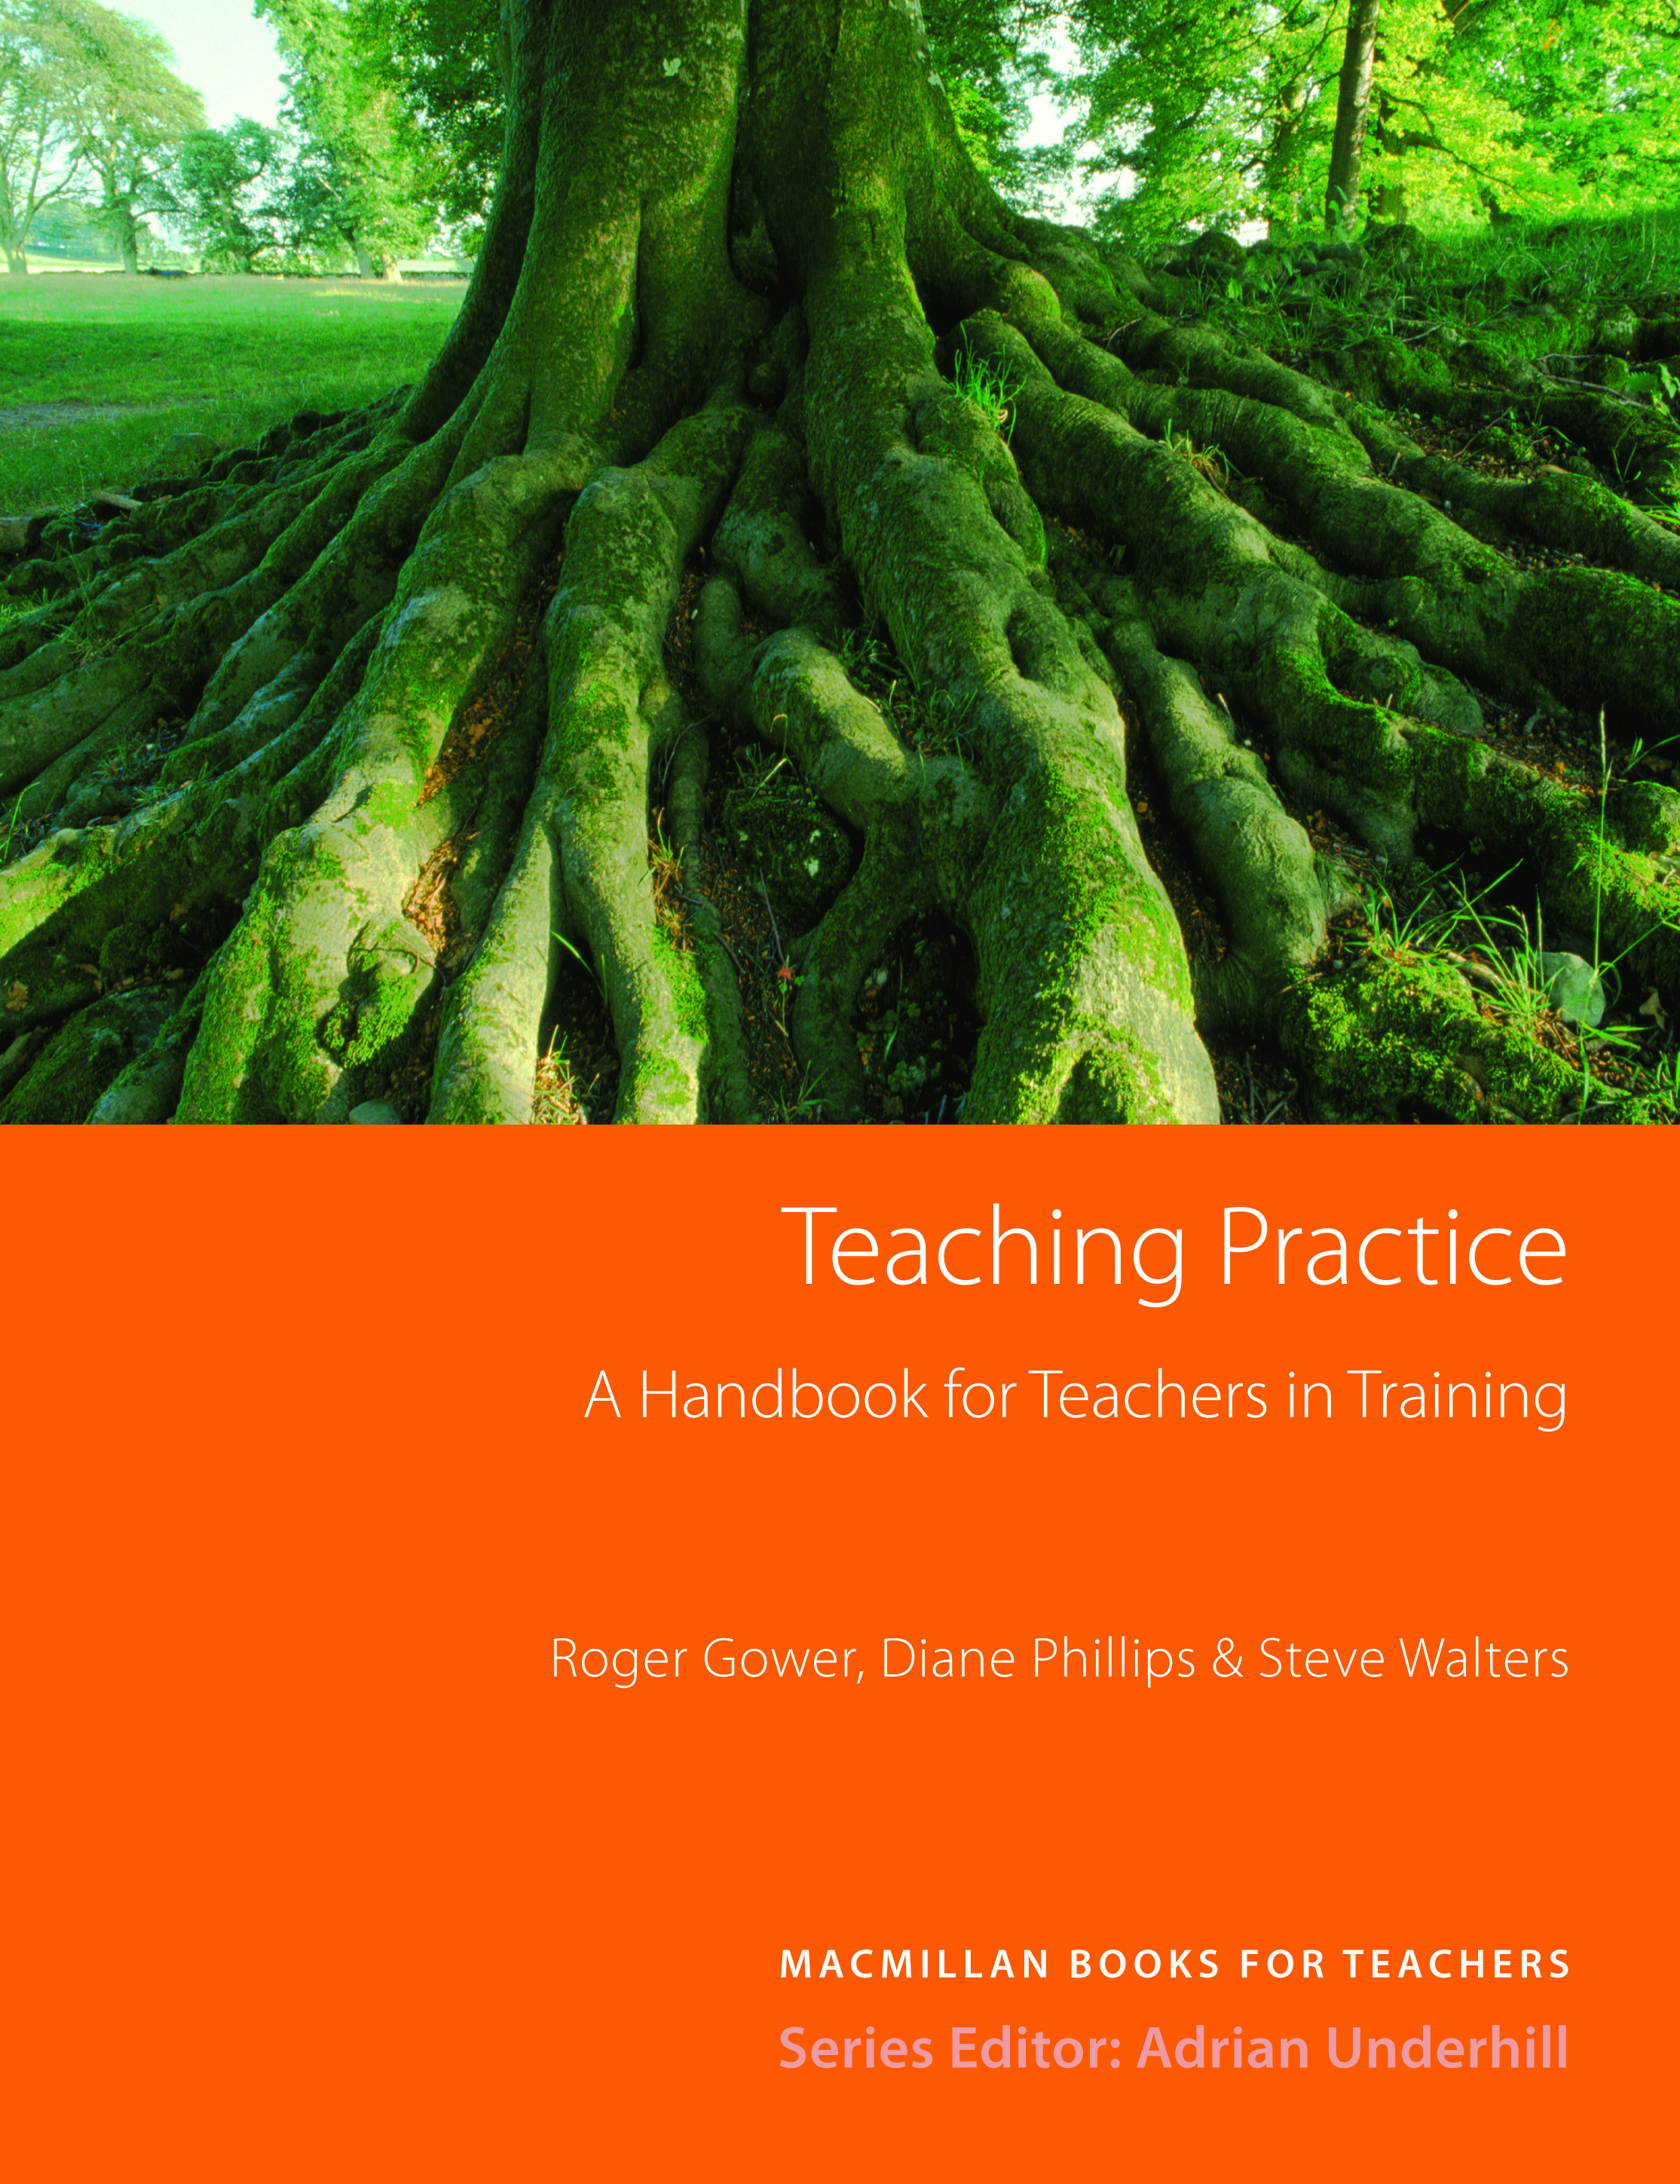 Macmillan Books for Teachers